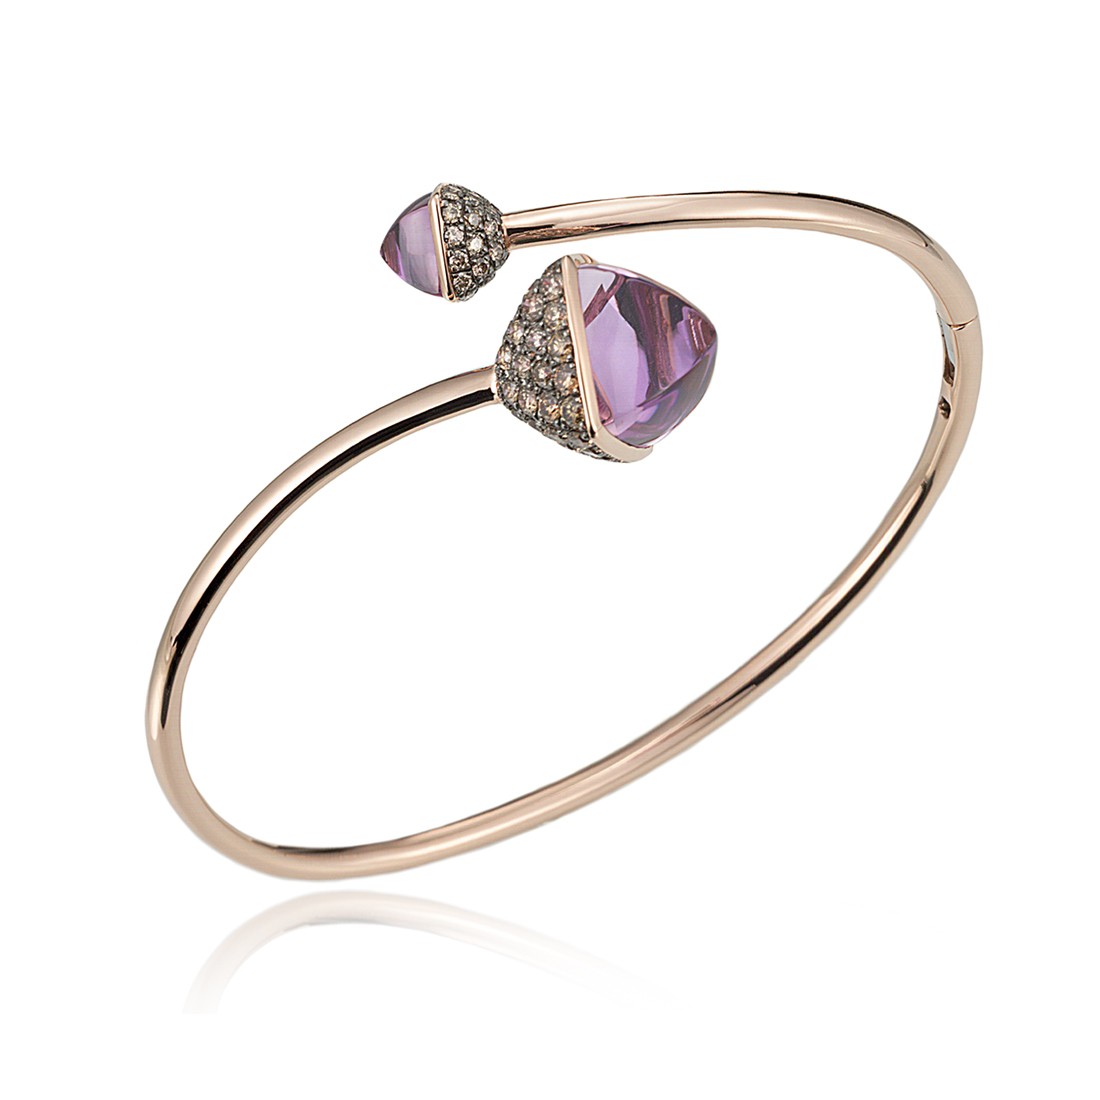 Diamond and Amethyst Bypass Bracelet in 14k Rose Gold by Ax Jewelry